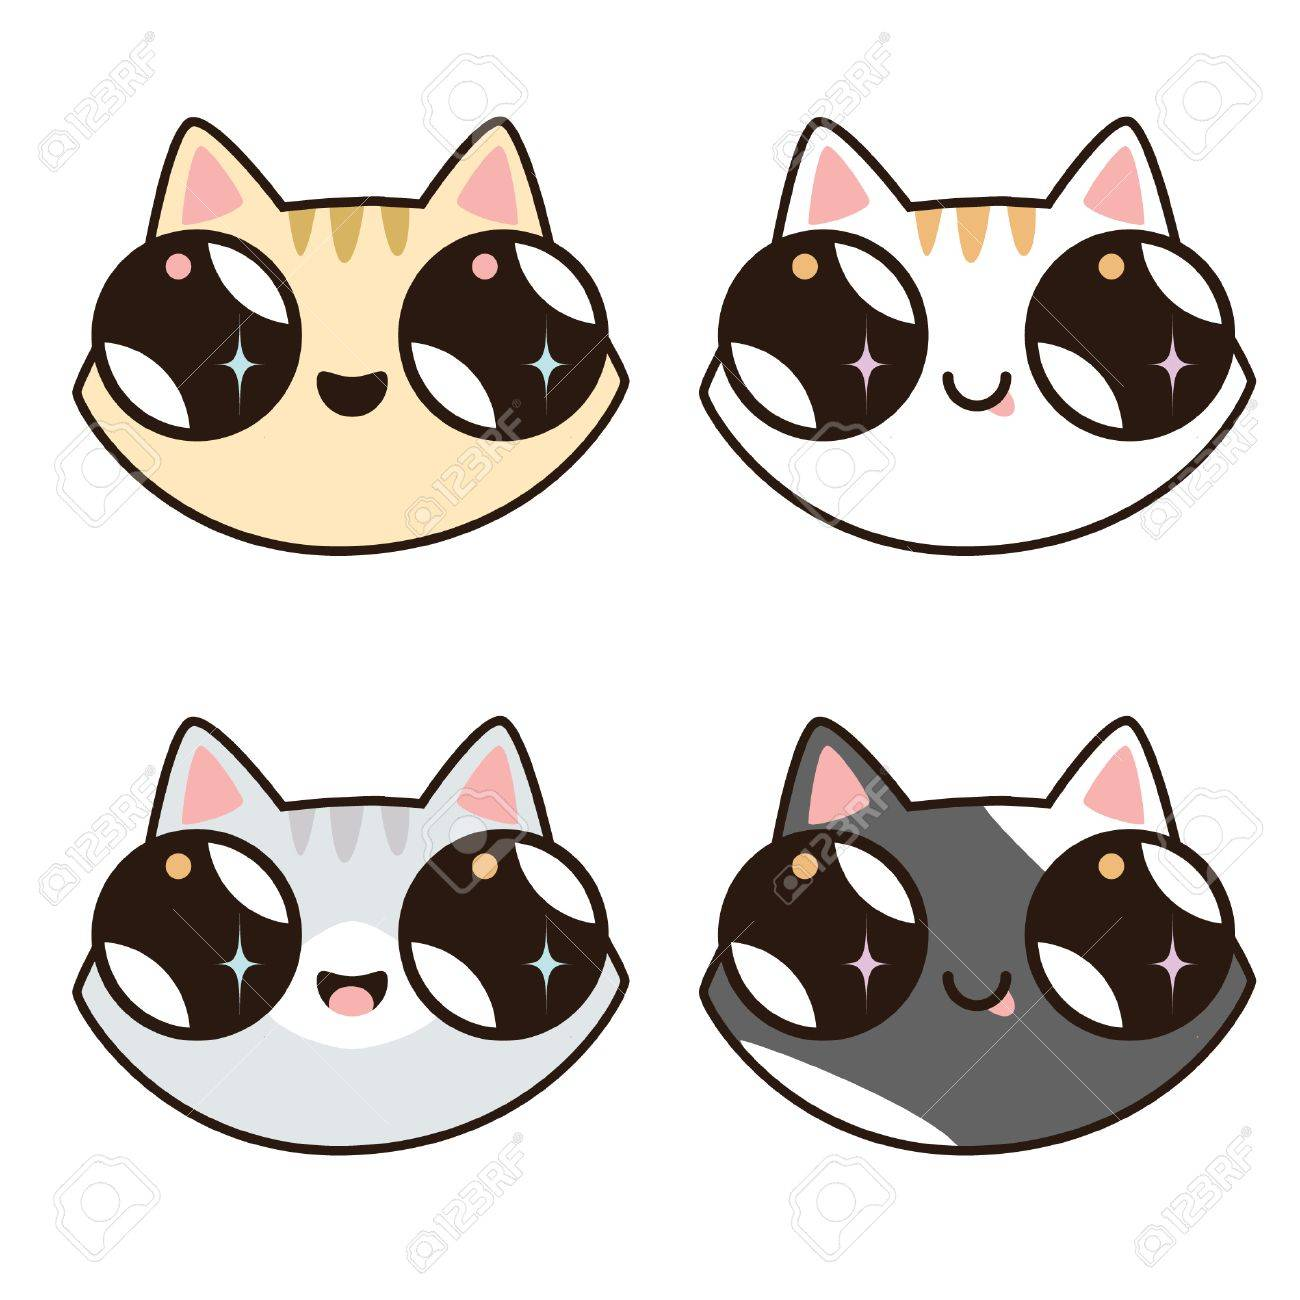 Set Of 4 Kawaii Cats 4 Cat Faces Cute Cartoon Kittens Of Different Royalty Free Cliparts Vectors And Stock Illustration Image 72740336